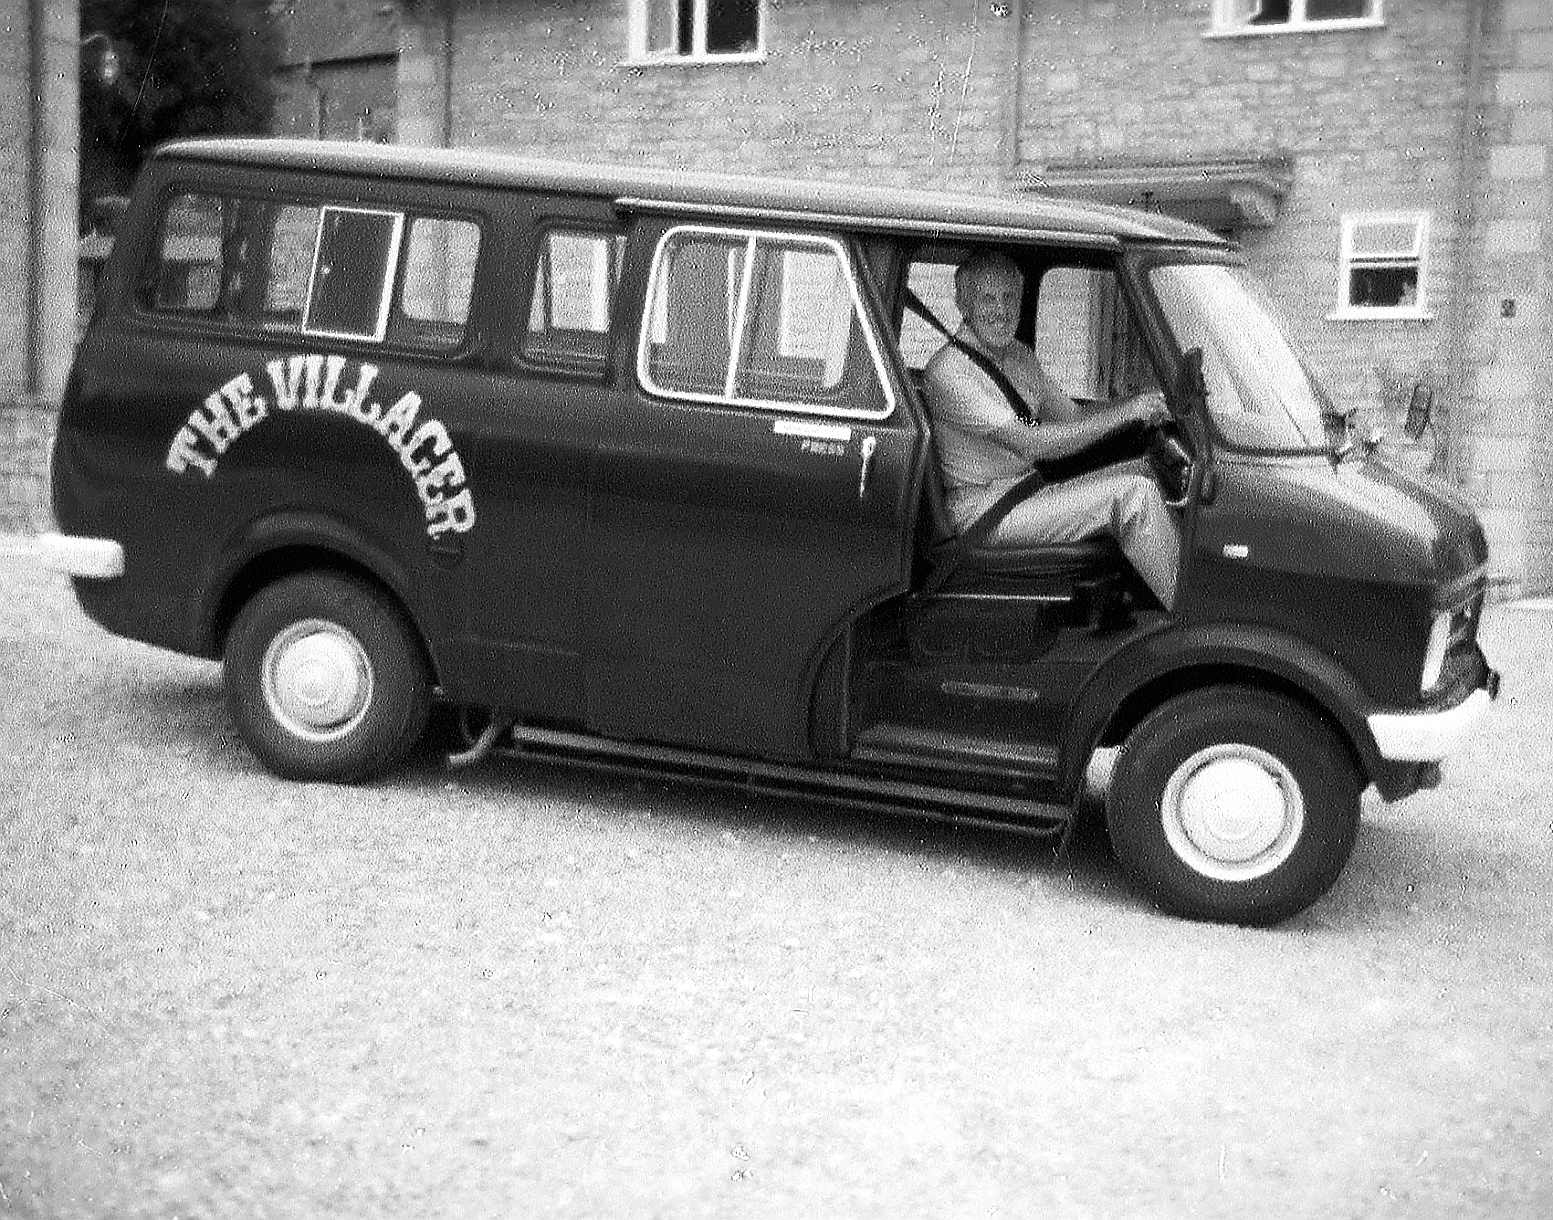 One of the original Villager minibuses